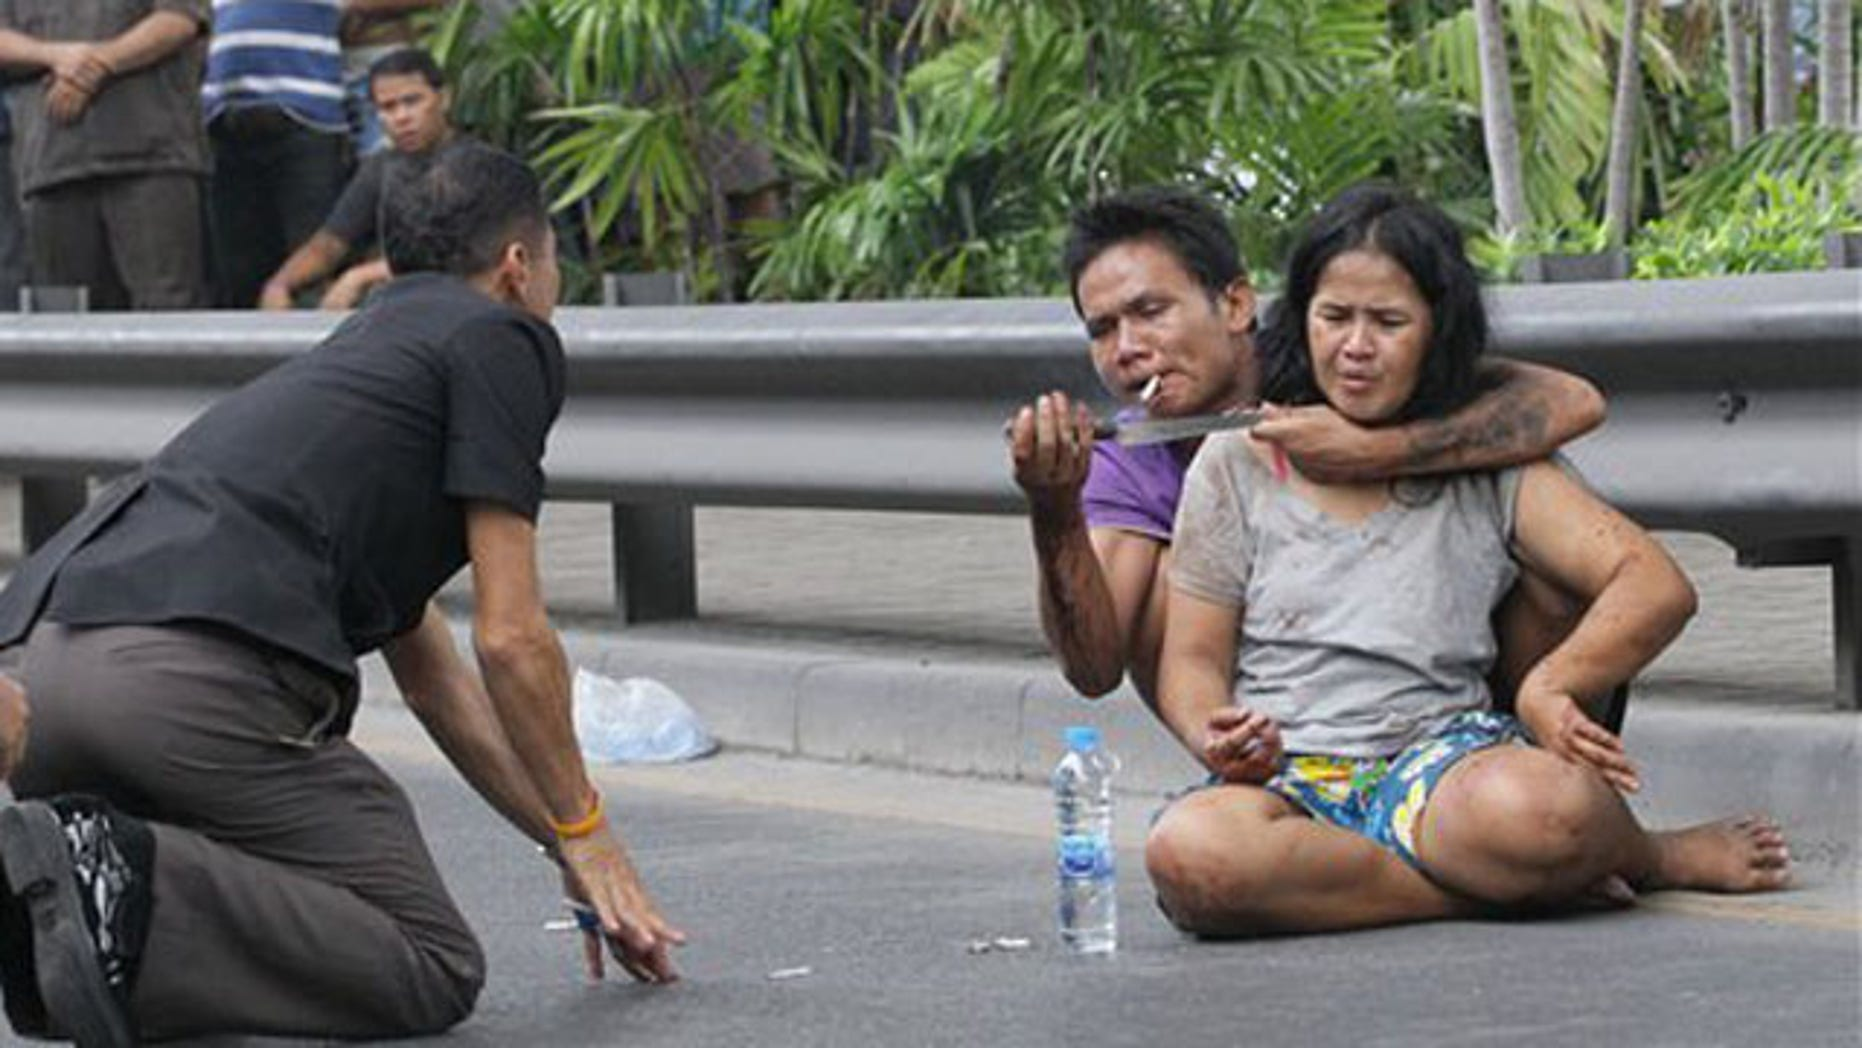 April 5, 2012: A Thai policeman talks to Sakdawut Hamsiri, 30, who holds a knife against his wife Thawee Naiyanit on a street in Bangkok.